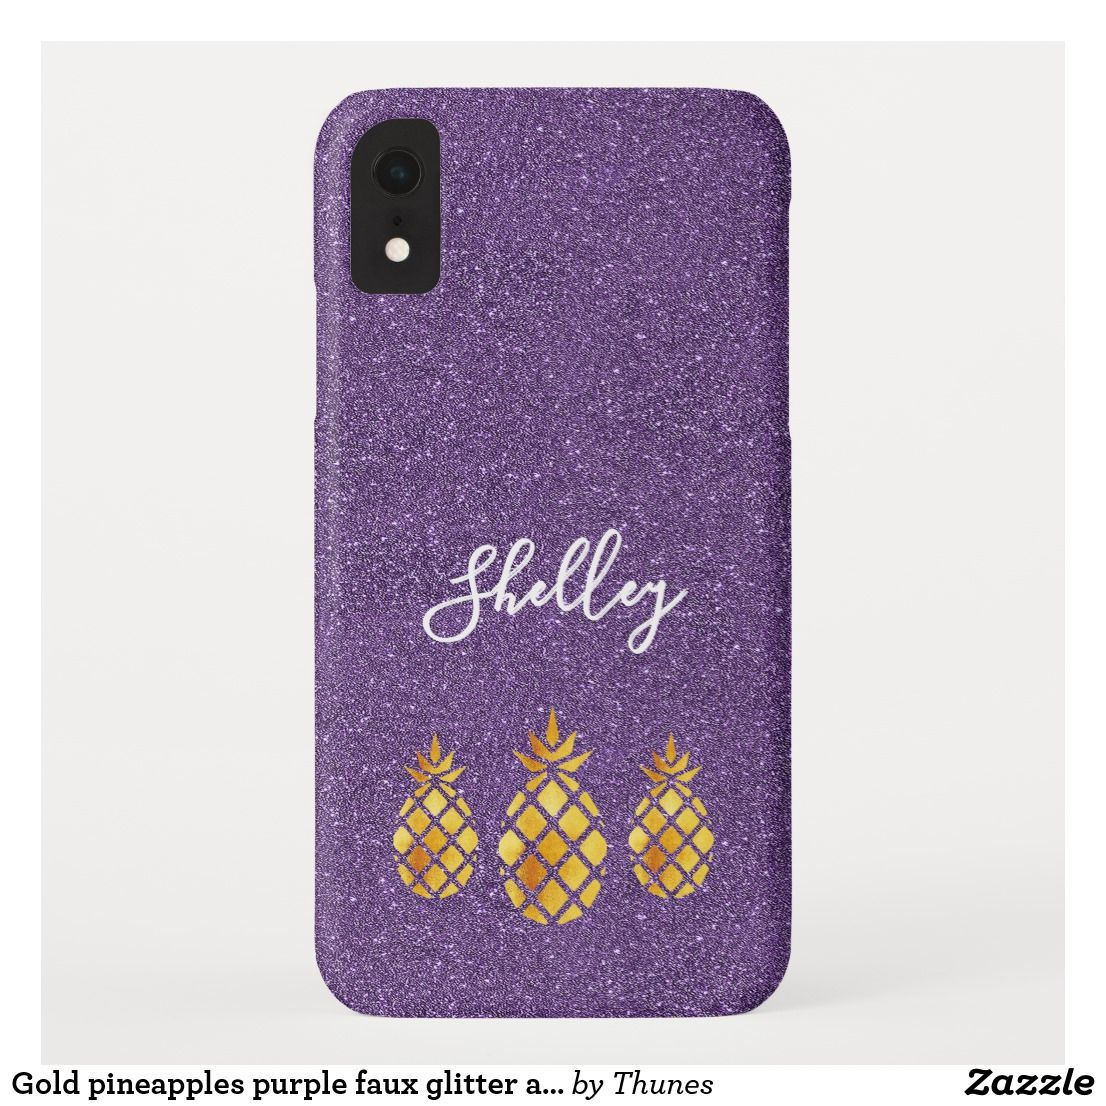 Gold pineapples purple faux glitter add a name CaseMate